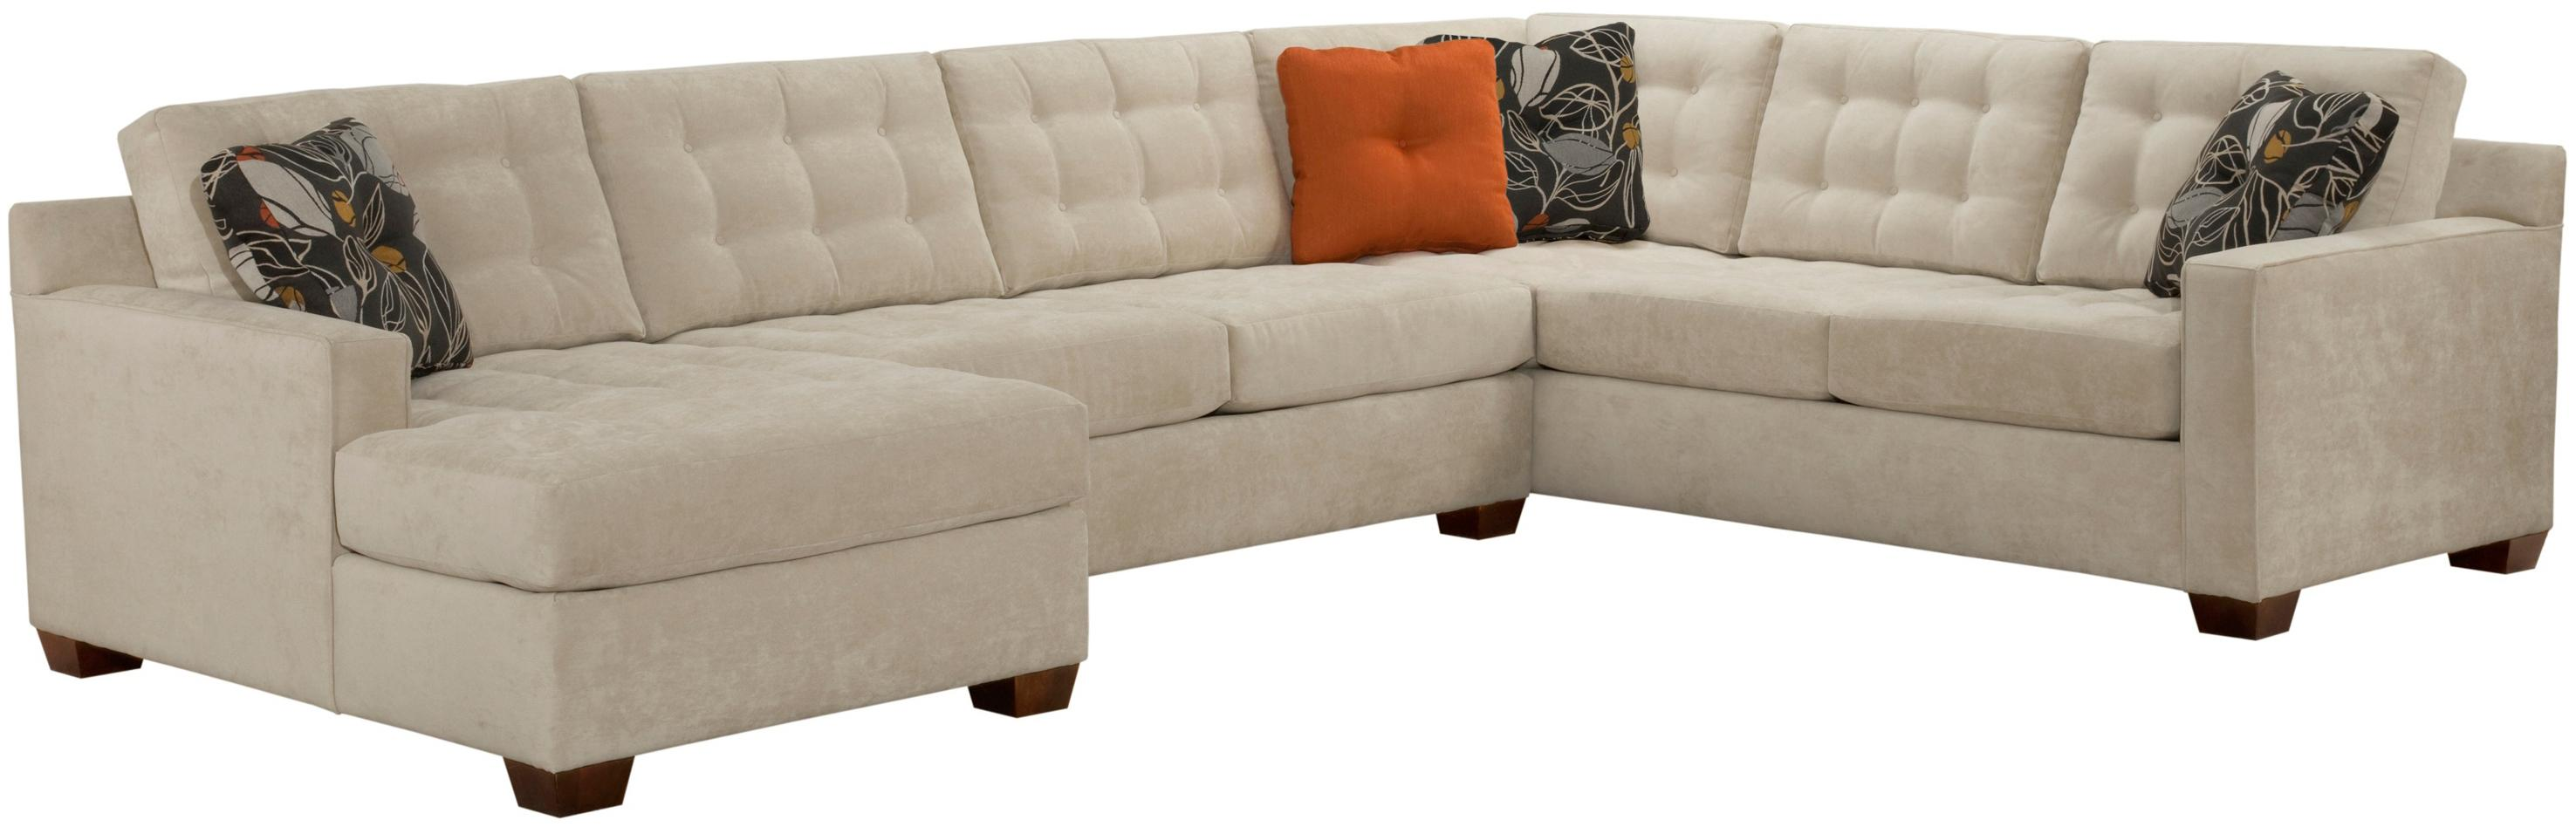 Broyhill Furniture Tribeca Contemporary Sectional Sofa with Left